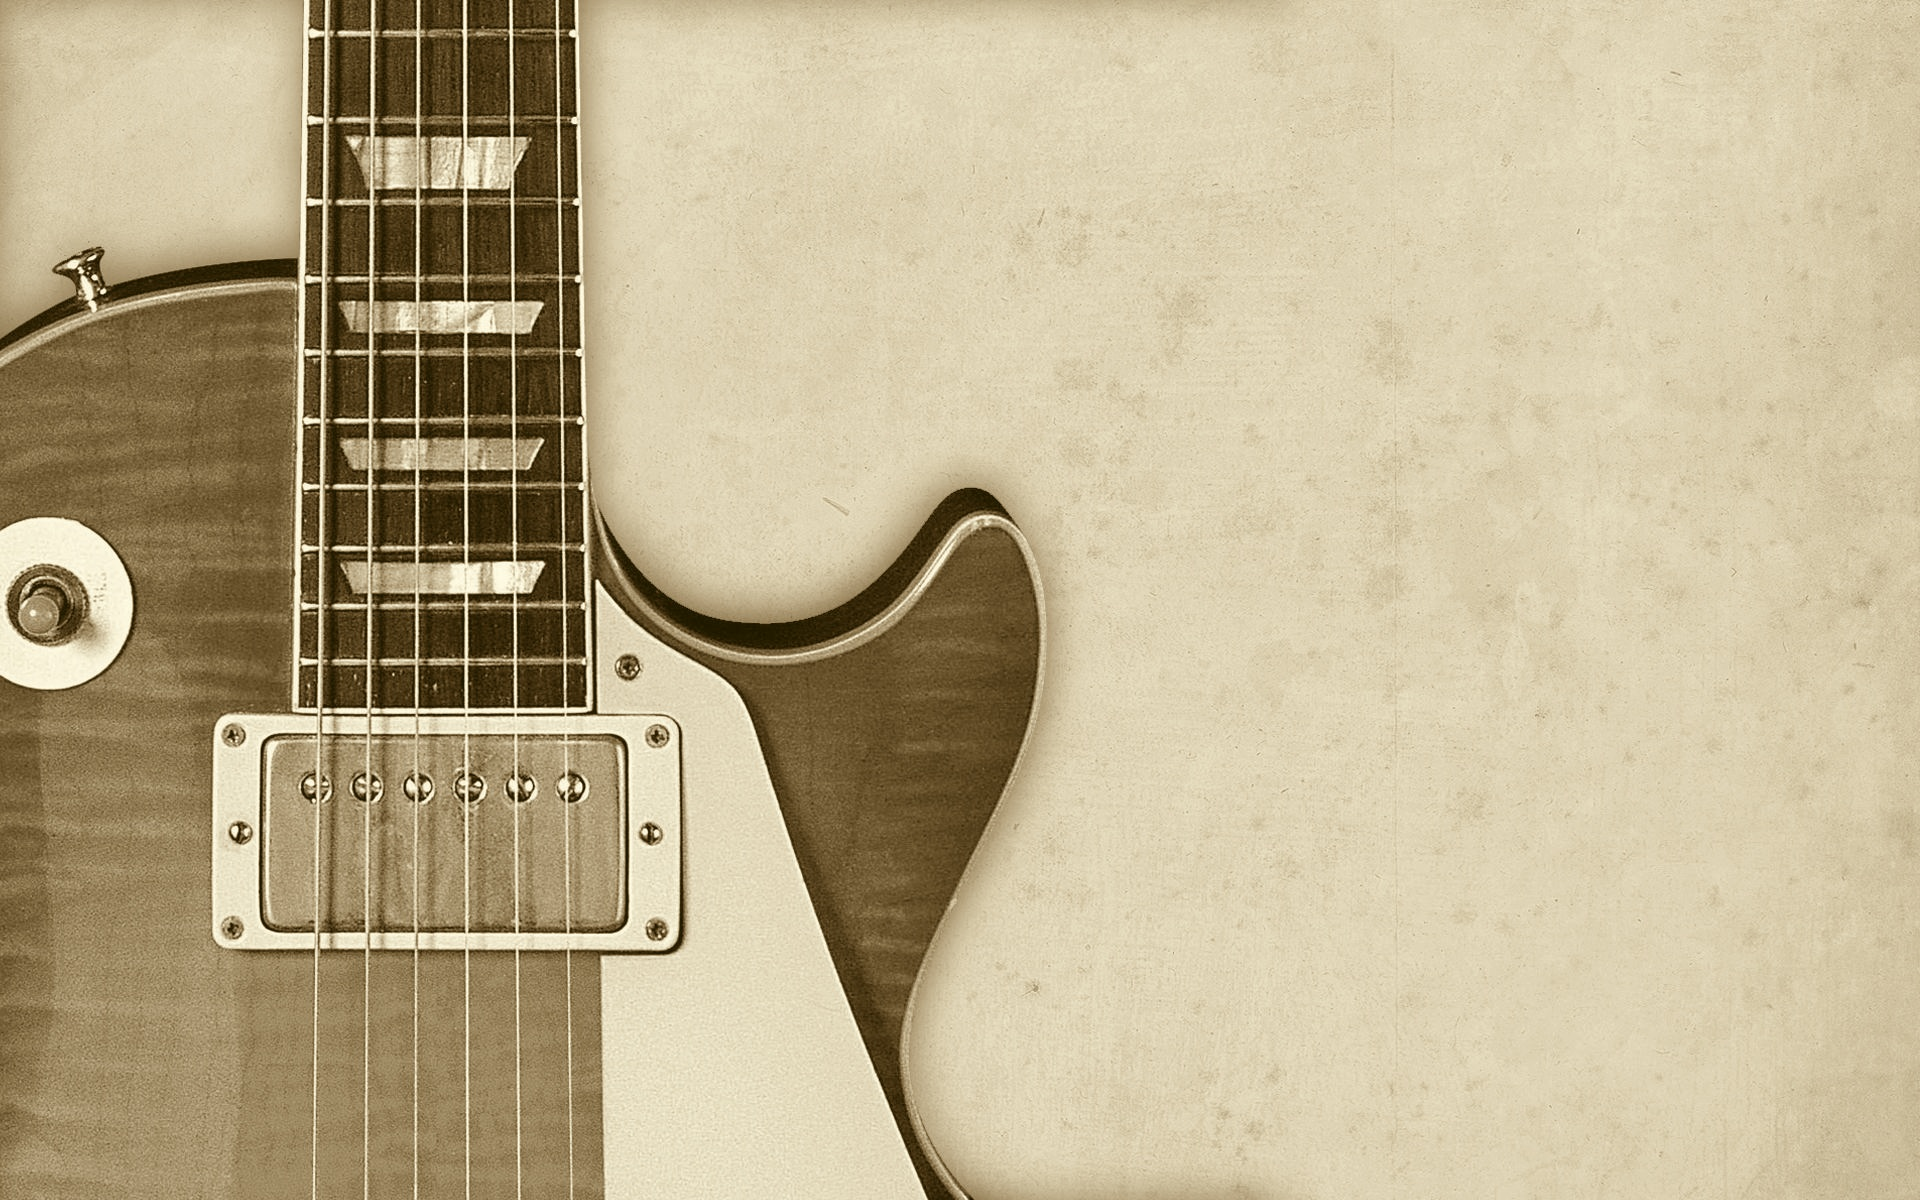 Guitar-Background-Wallpaper-08208